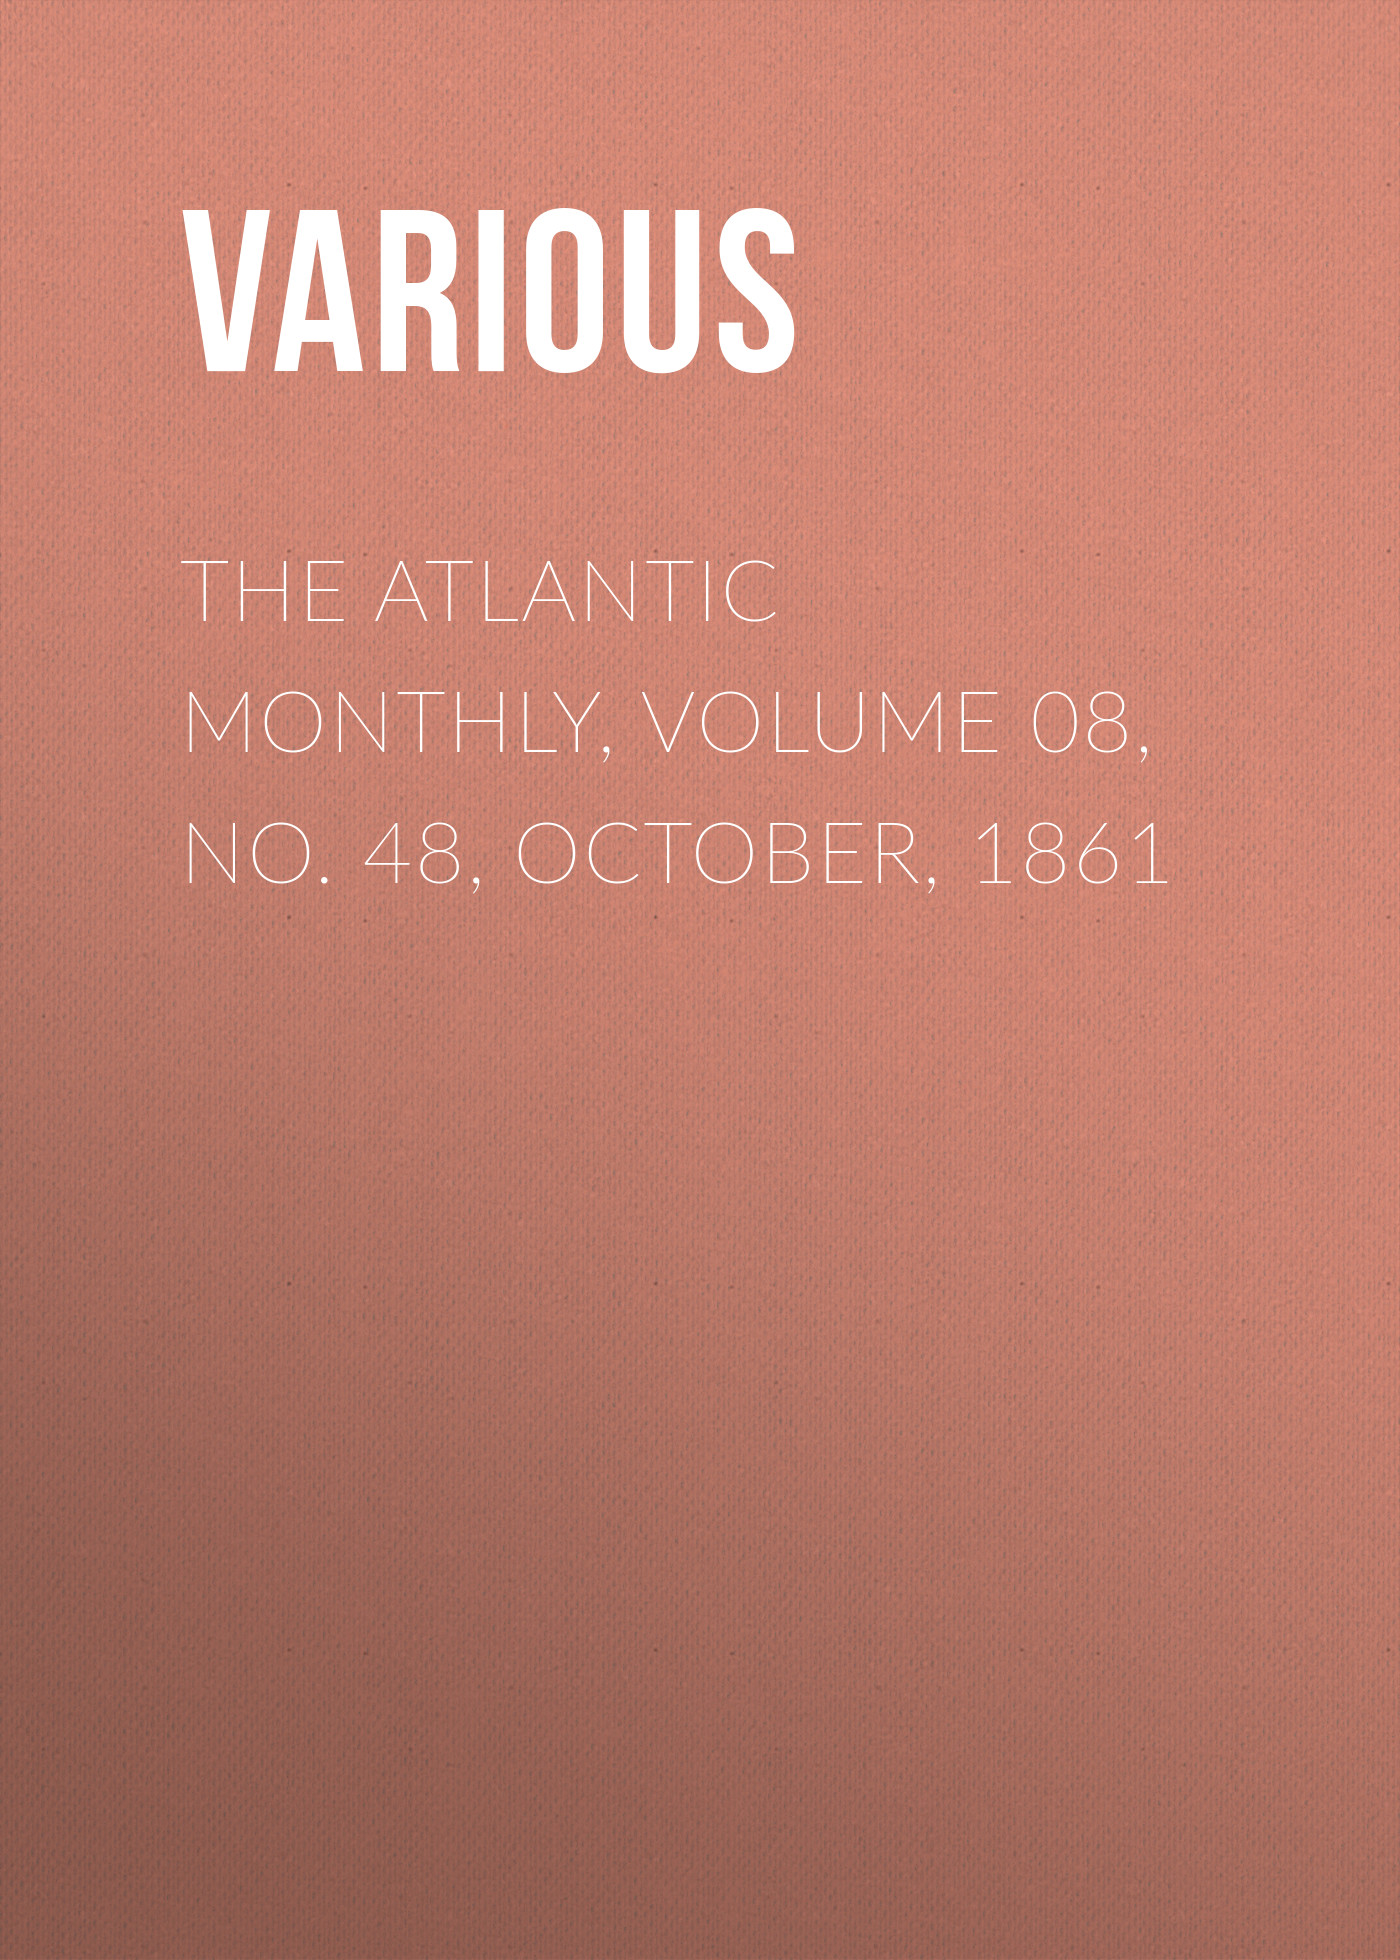 Various The Atlantic Monthly, Volume 08, No. 48, October, 1861 various armour s monthly cook book volume 2 no 12 october 1913